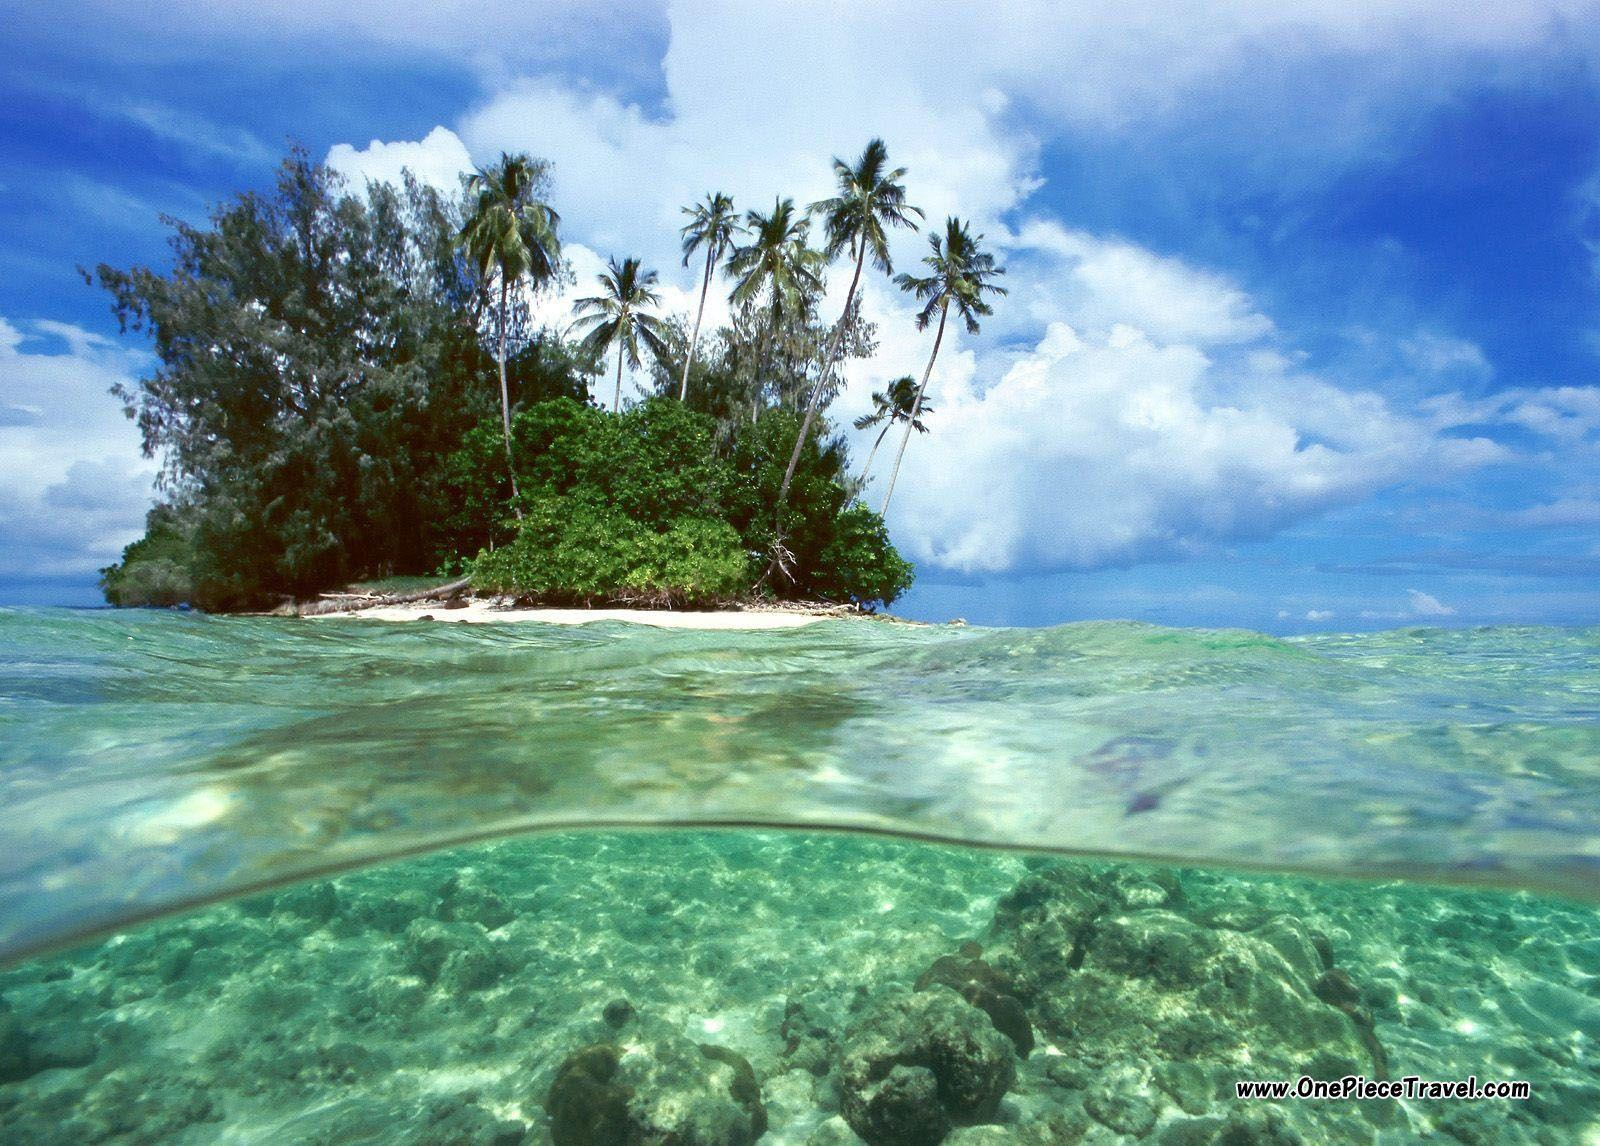 Travelling Solomon Islands 1600x1200 – 100% Quality HD Wallpapers